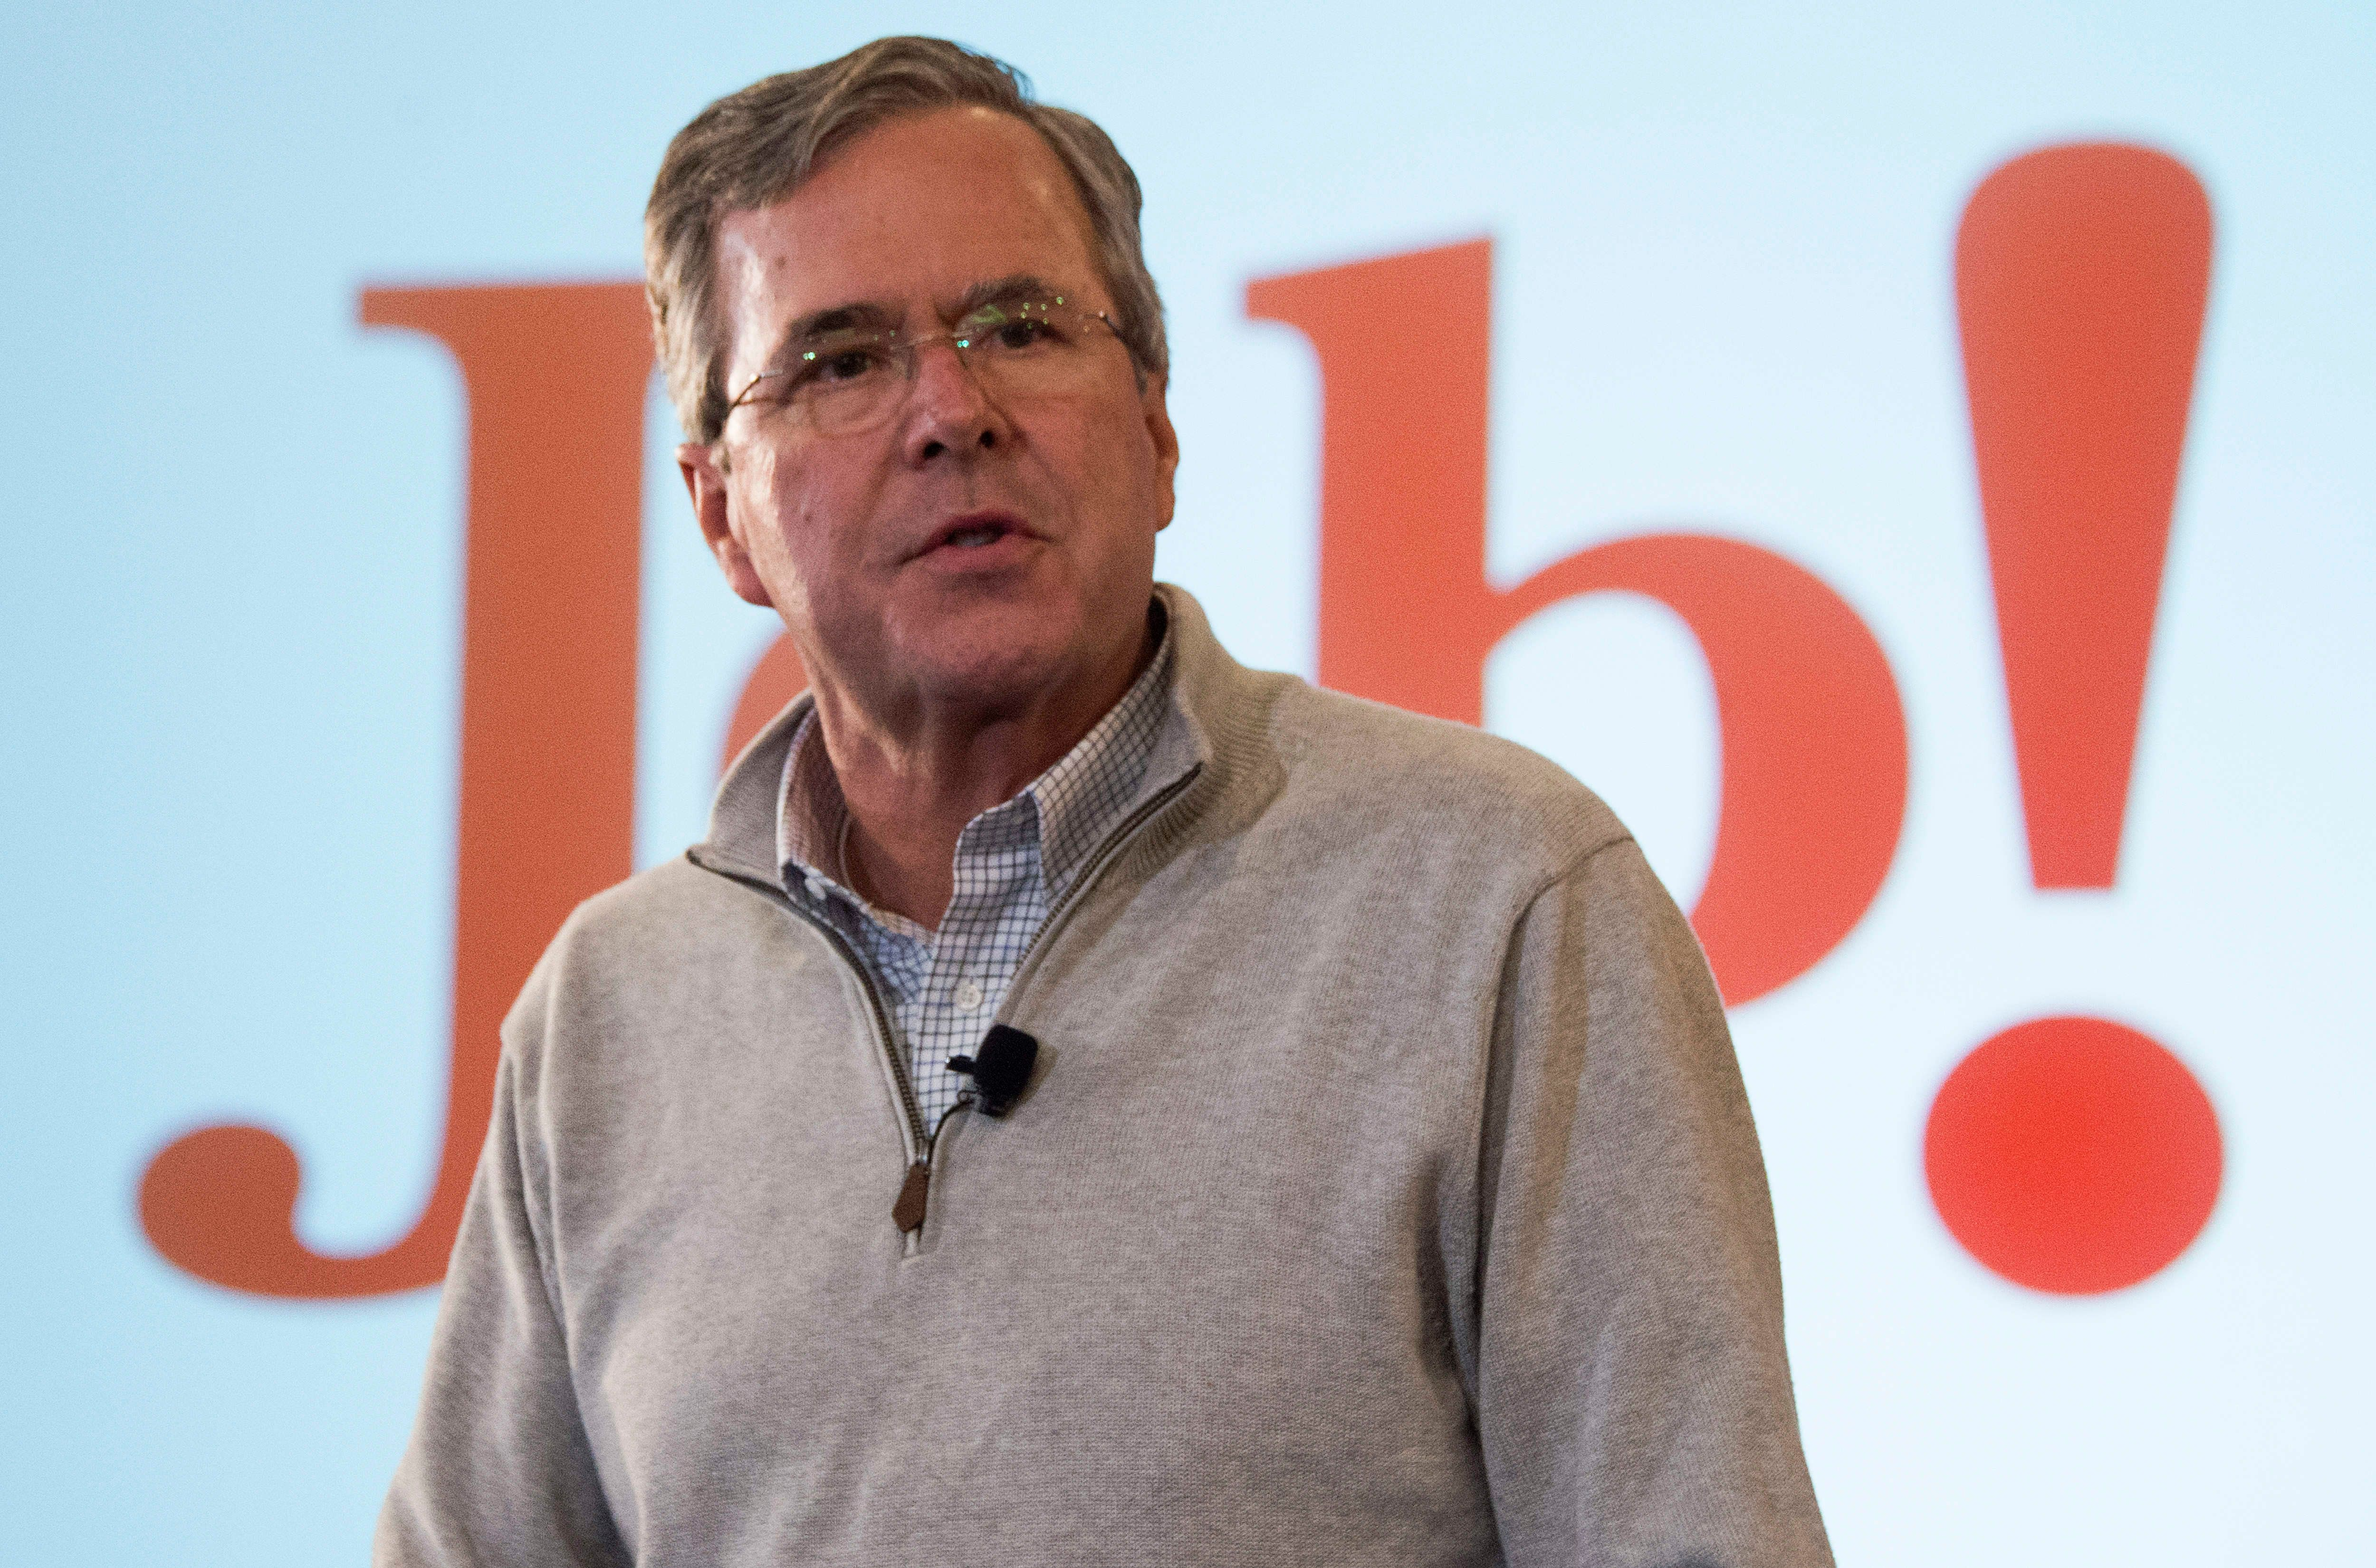 Republican presidential candidate and former Florida Gov. Jeb Bush spent $2,800 per vote in Iowa and received less than 3 per